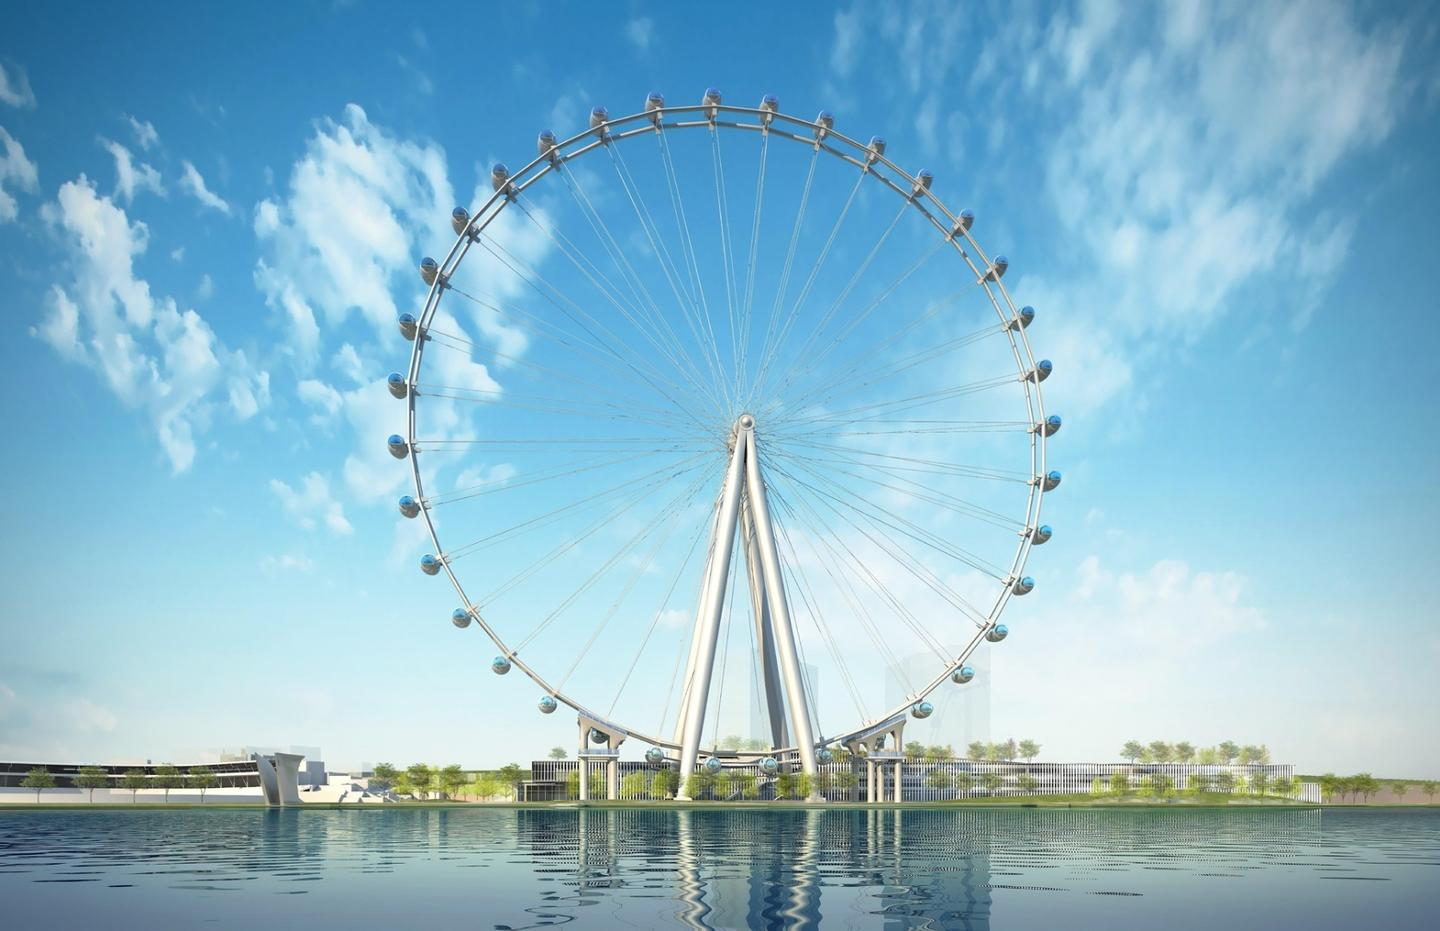 The New York Wheel will be 630-ft (192-m) tall